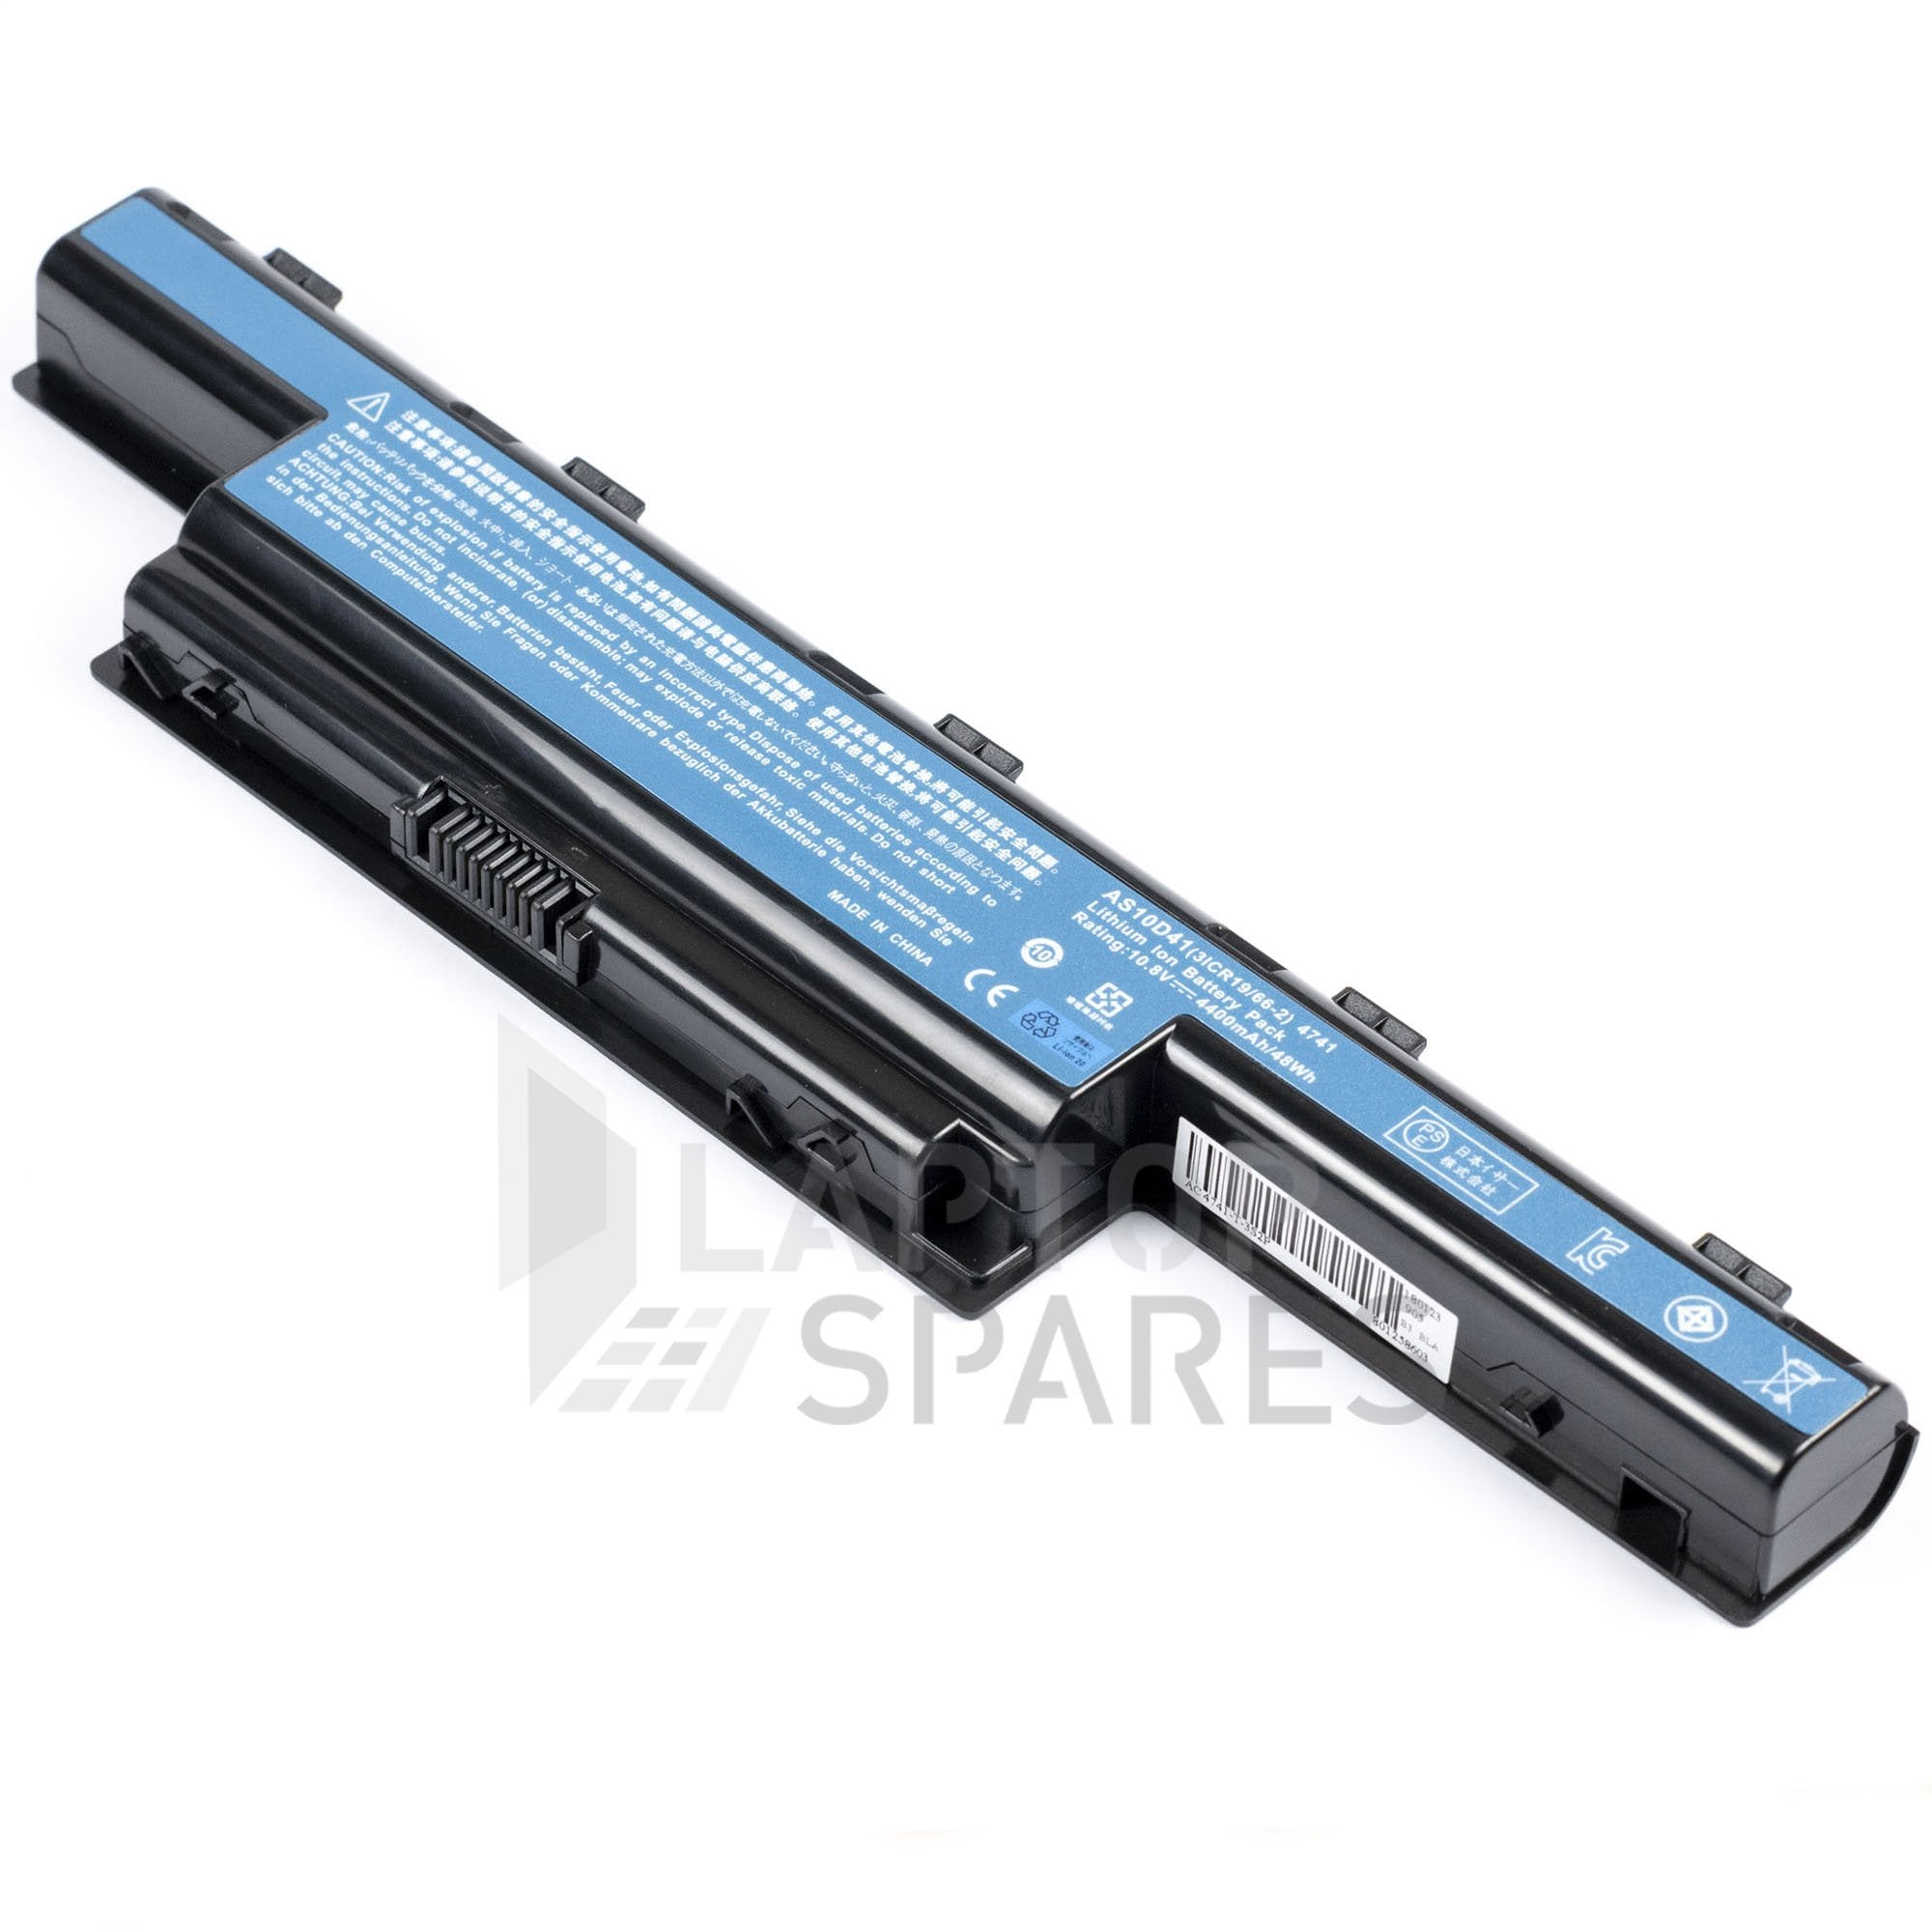 Acer Aspire 7551G 7552G 7560G 4400mAh 6 Cell Battery